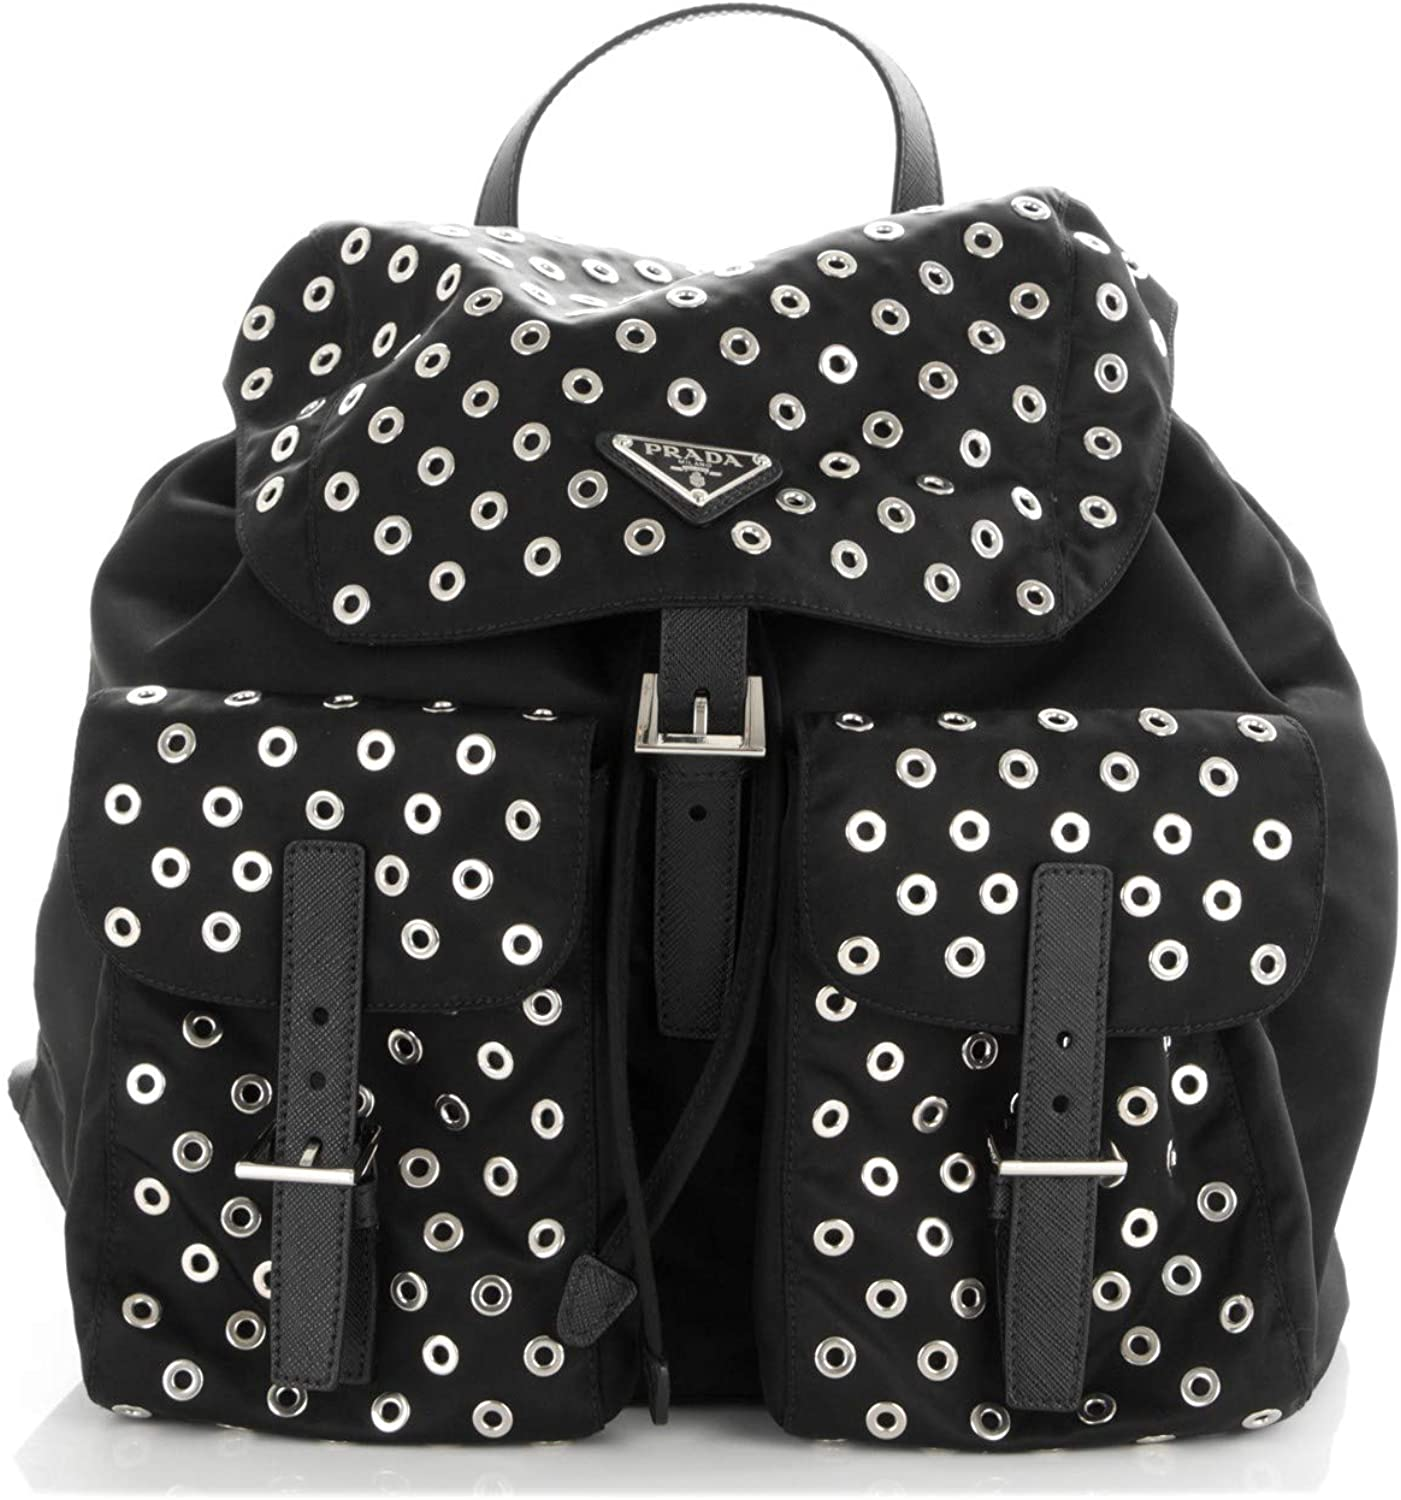 Prada 1BZ811 Tessuto Zainetto Nylon Grommet Black Backpack